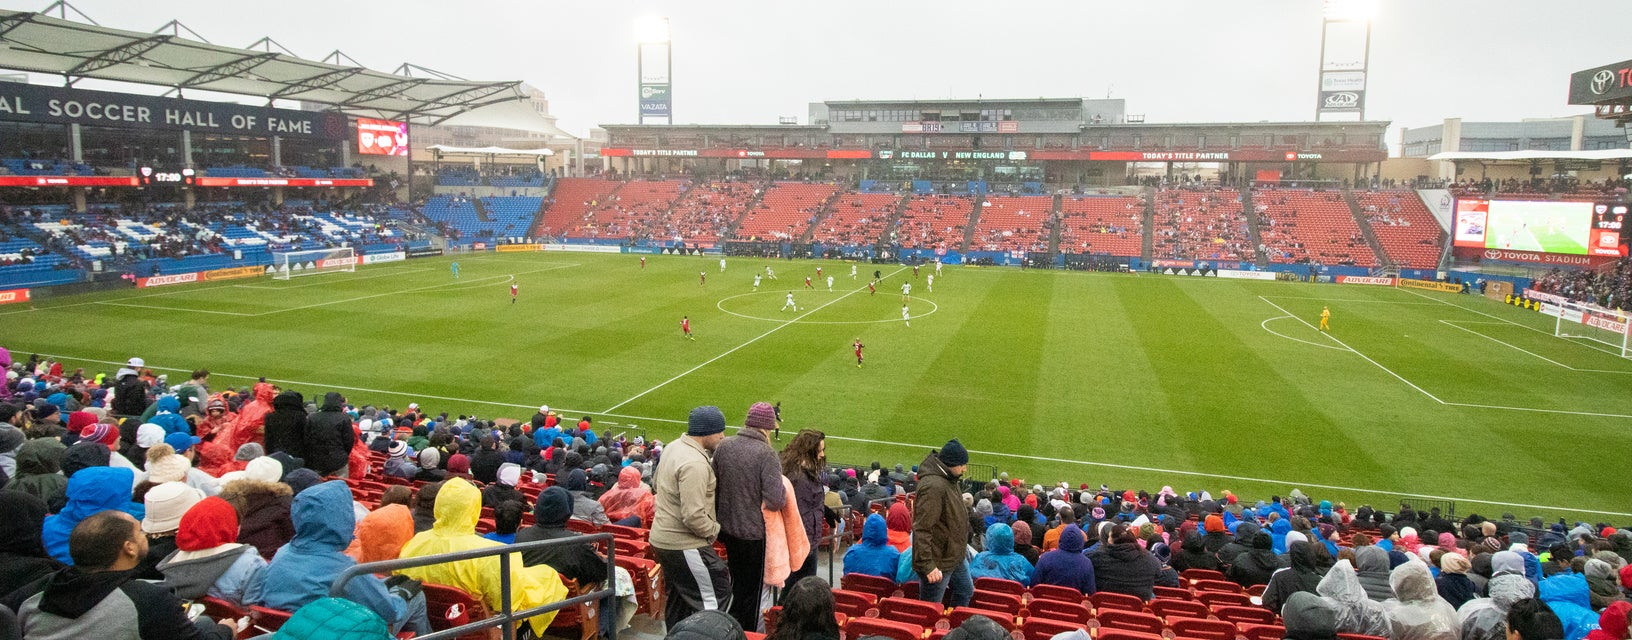 Seat view from Sideline East